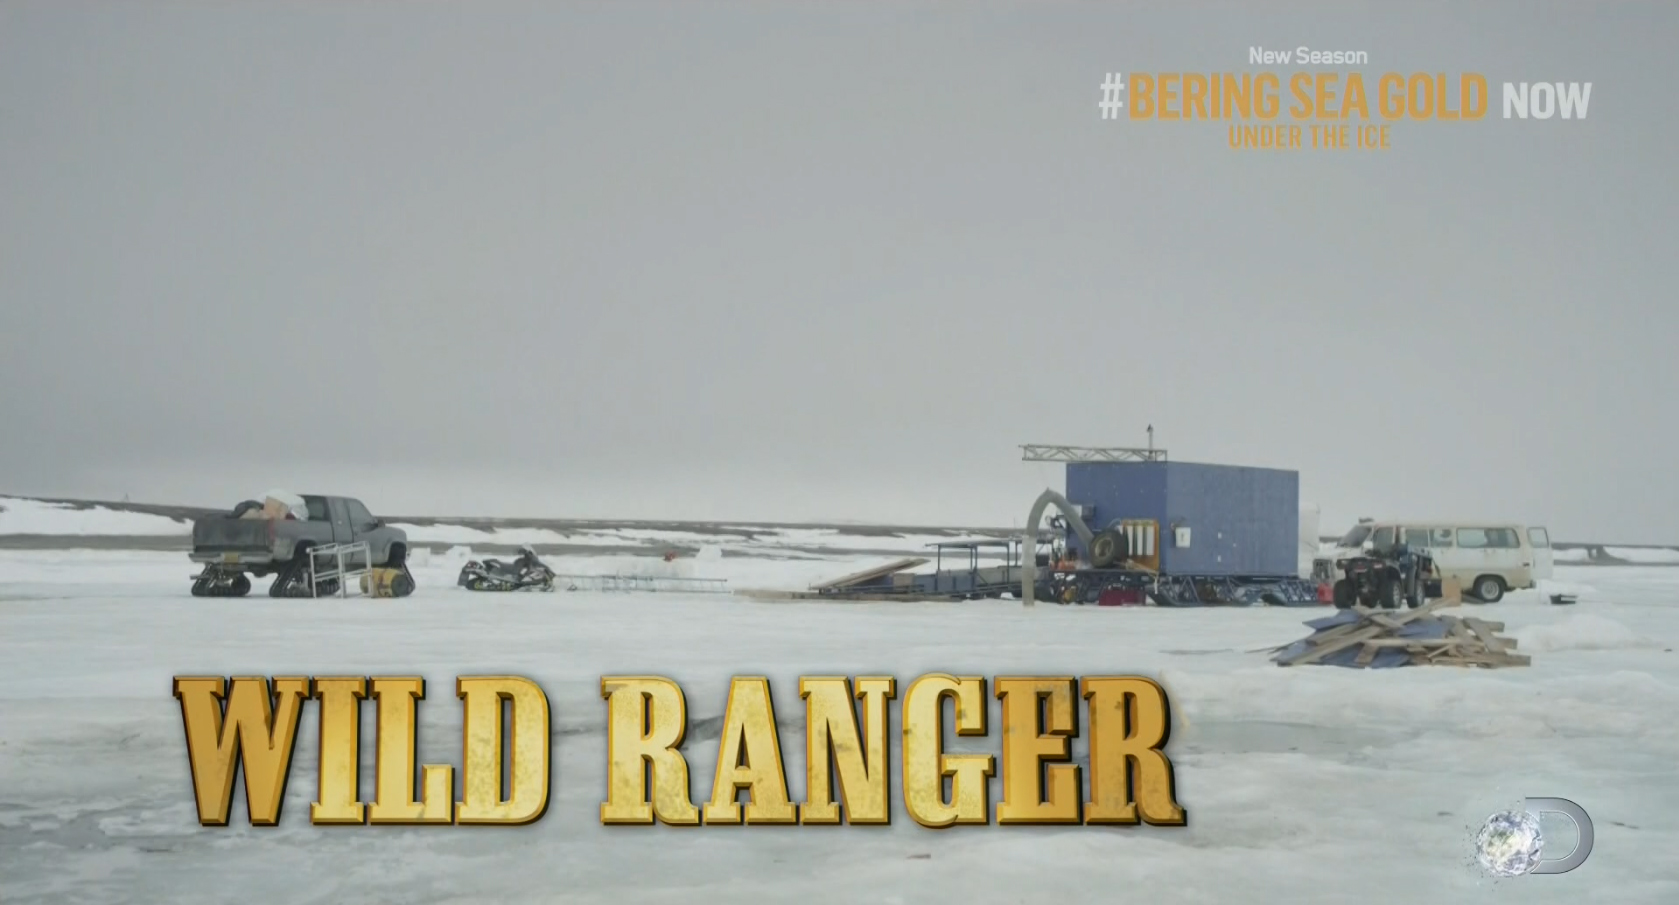 bering sea gold under the ice episode guide